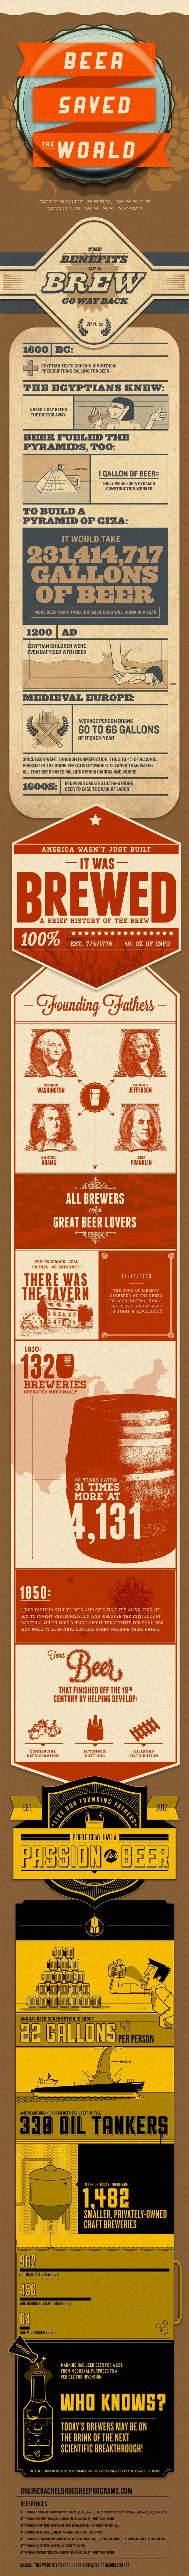 The Miraculous, Magical, Magnificent History Of Beer [Infographic]